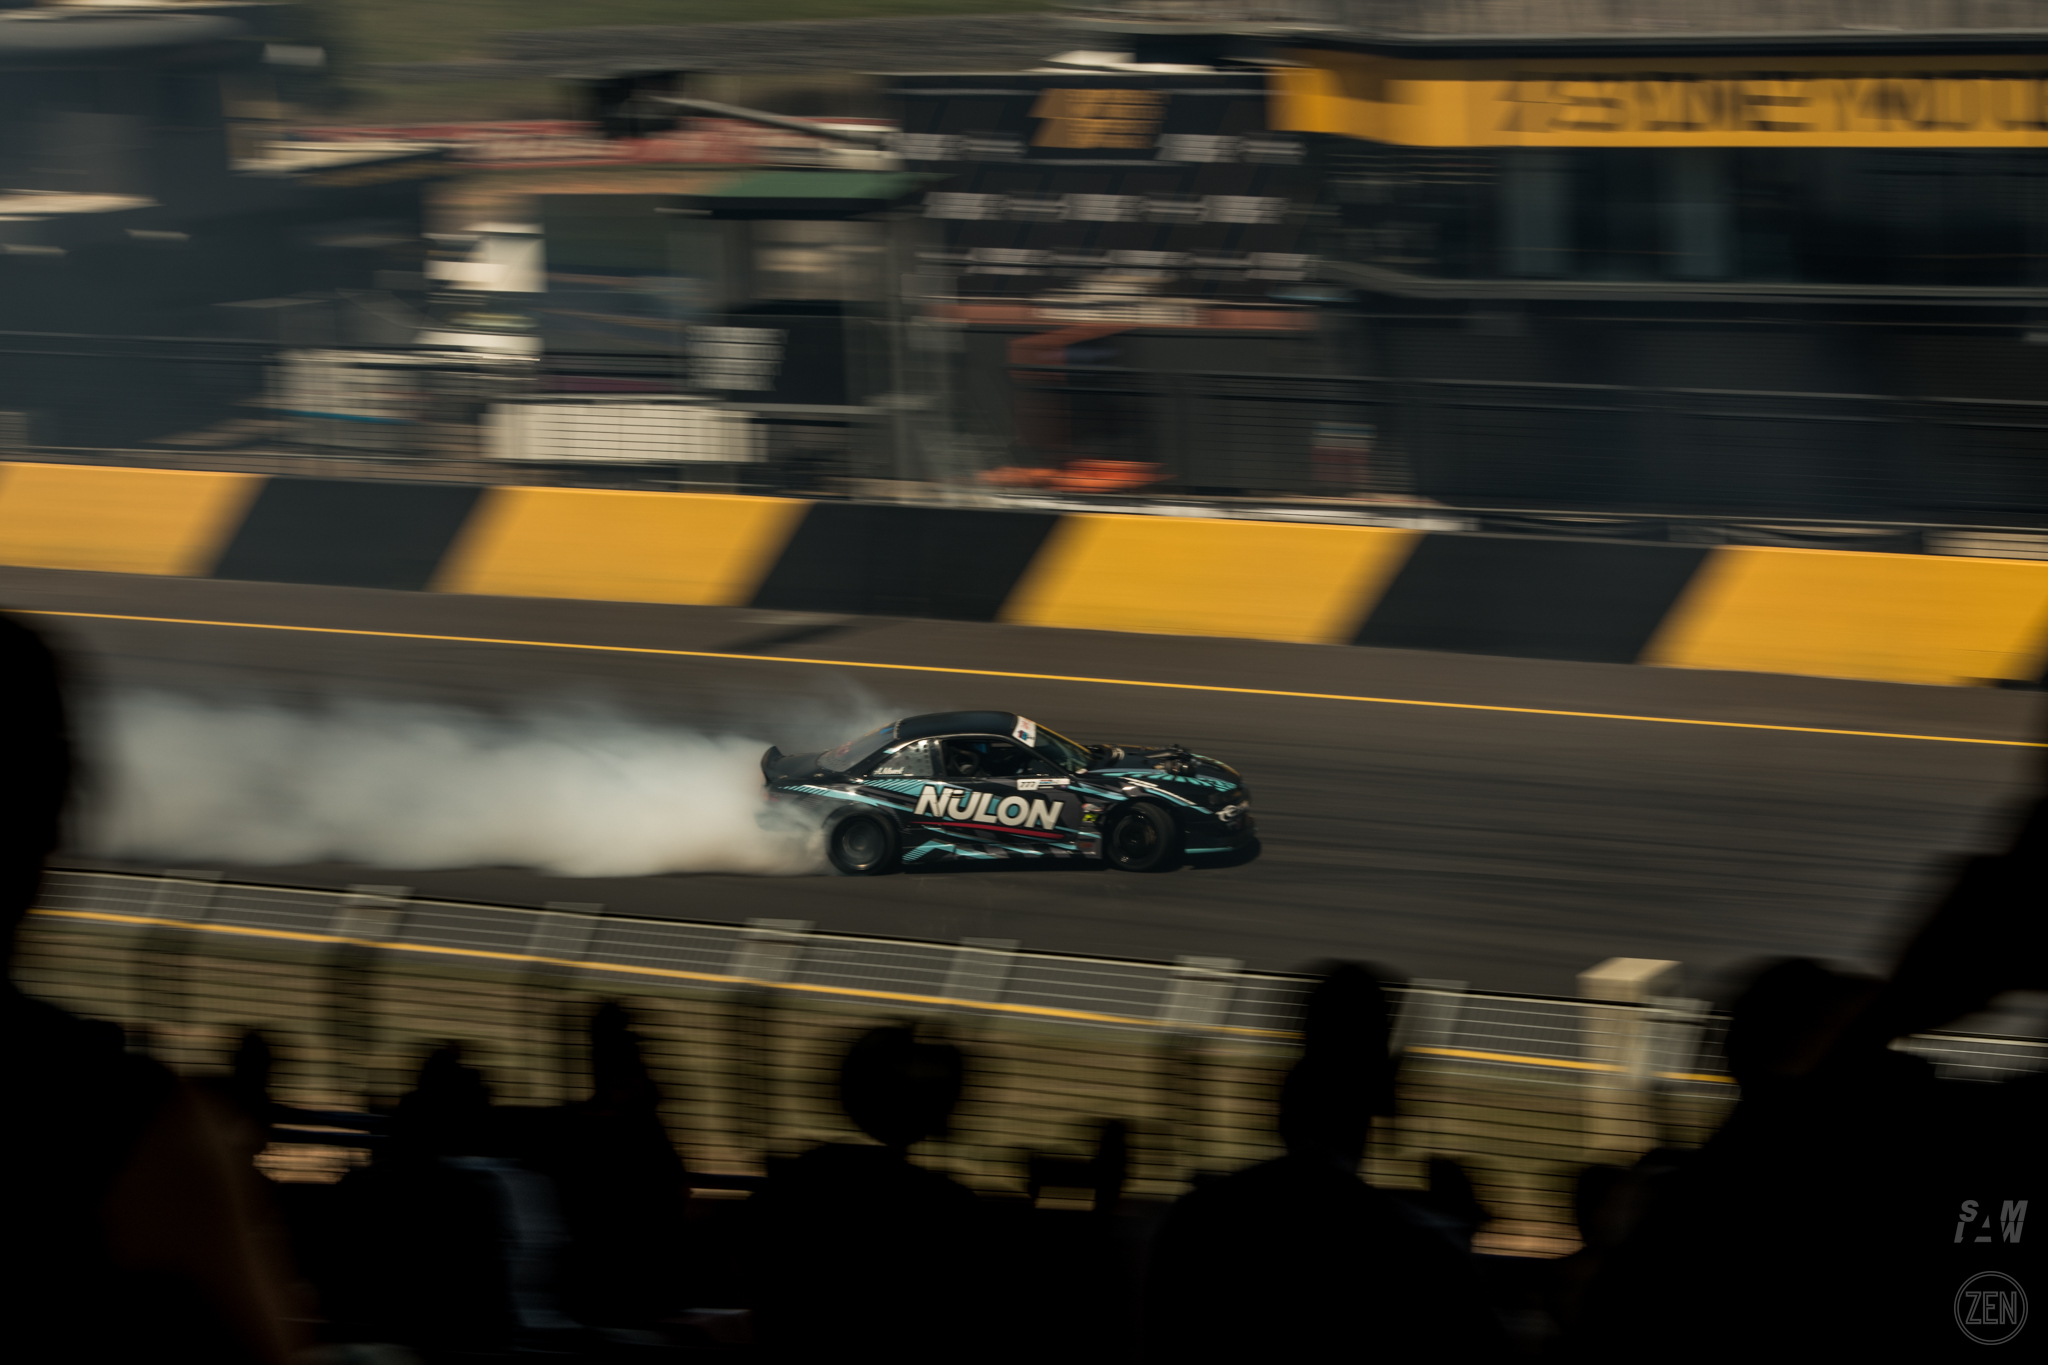 2019-10-18 - WTAC Day 01 044